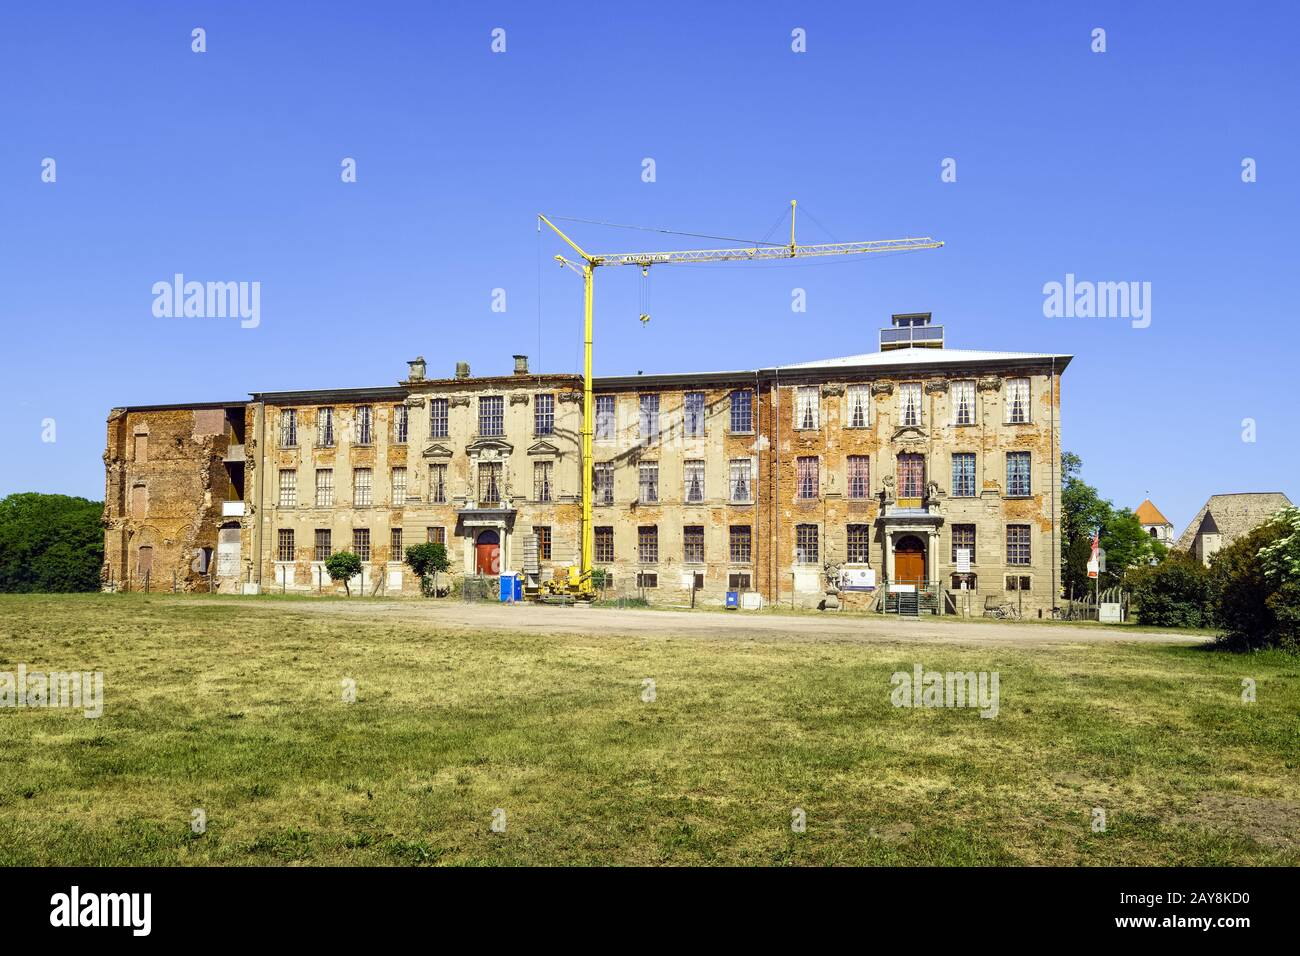 Ruins of the east wing of Zerbst Castle, Zerbst/Anhalt, Saxony-Anhalt, Germany Stock Photo